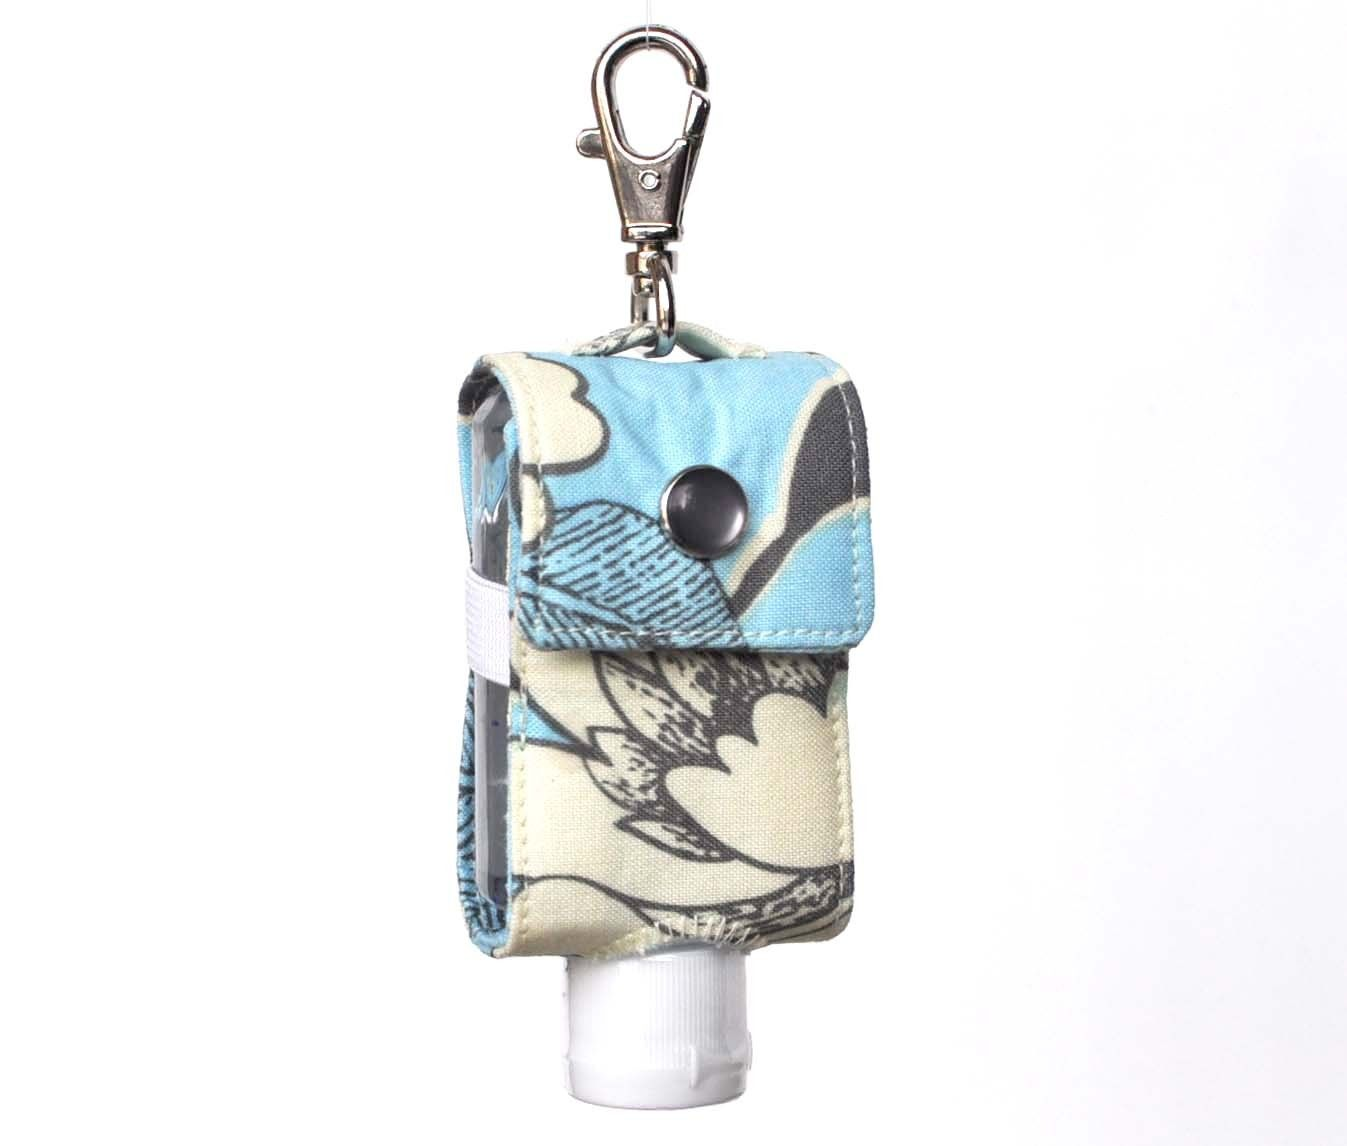 Hand Sanitizer Keychain Holder The Original